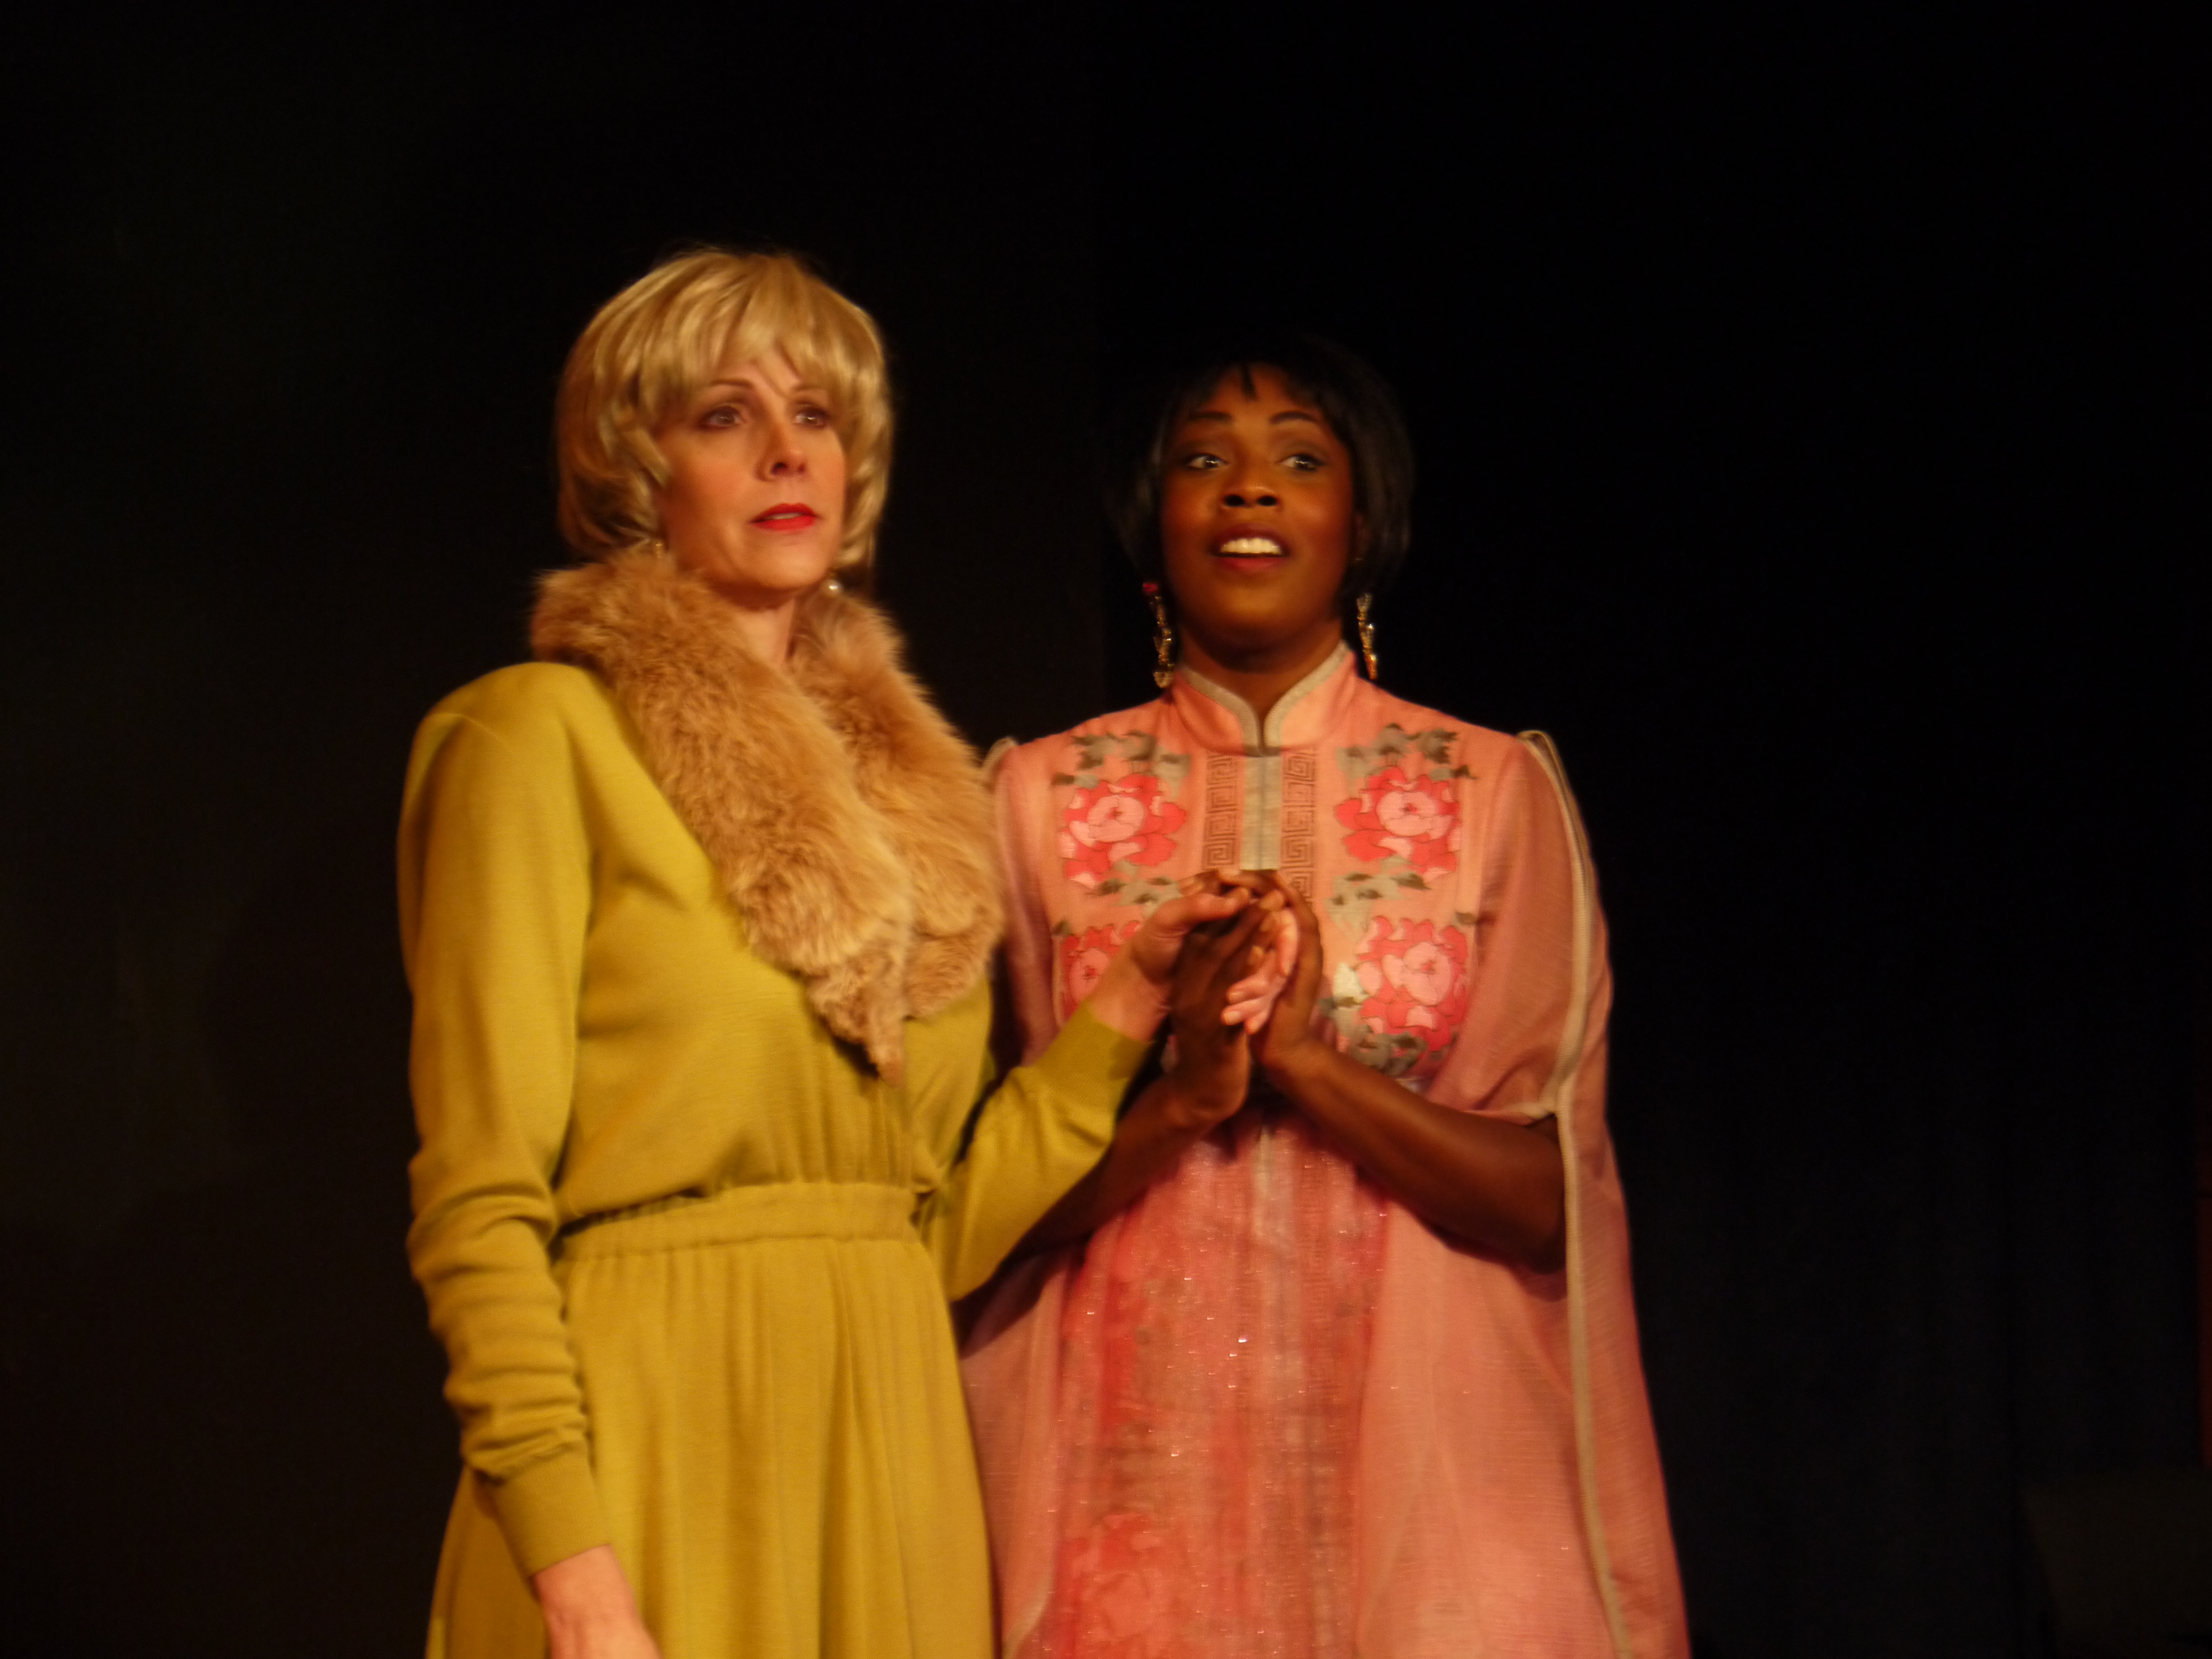 BWW Reviews: The Ensemble Theatre's BY THE WAY, MEET VERA STARK is As Poignant As It Is Hilarious